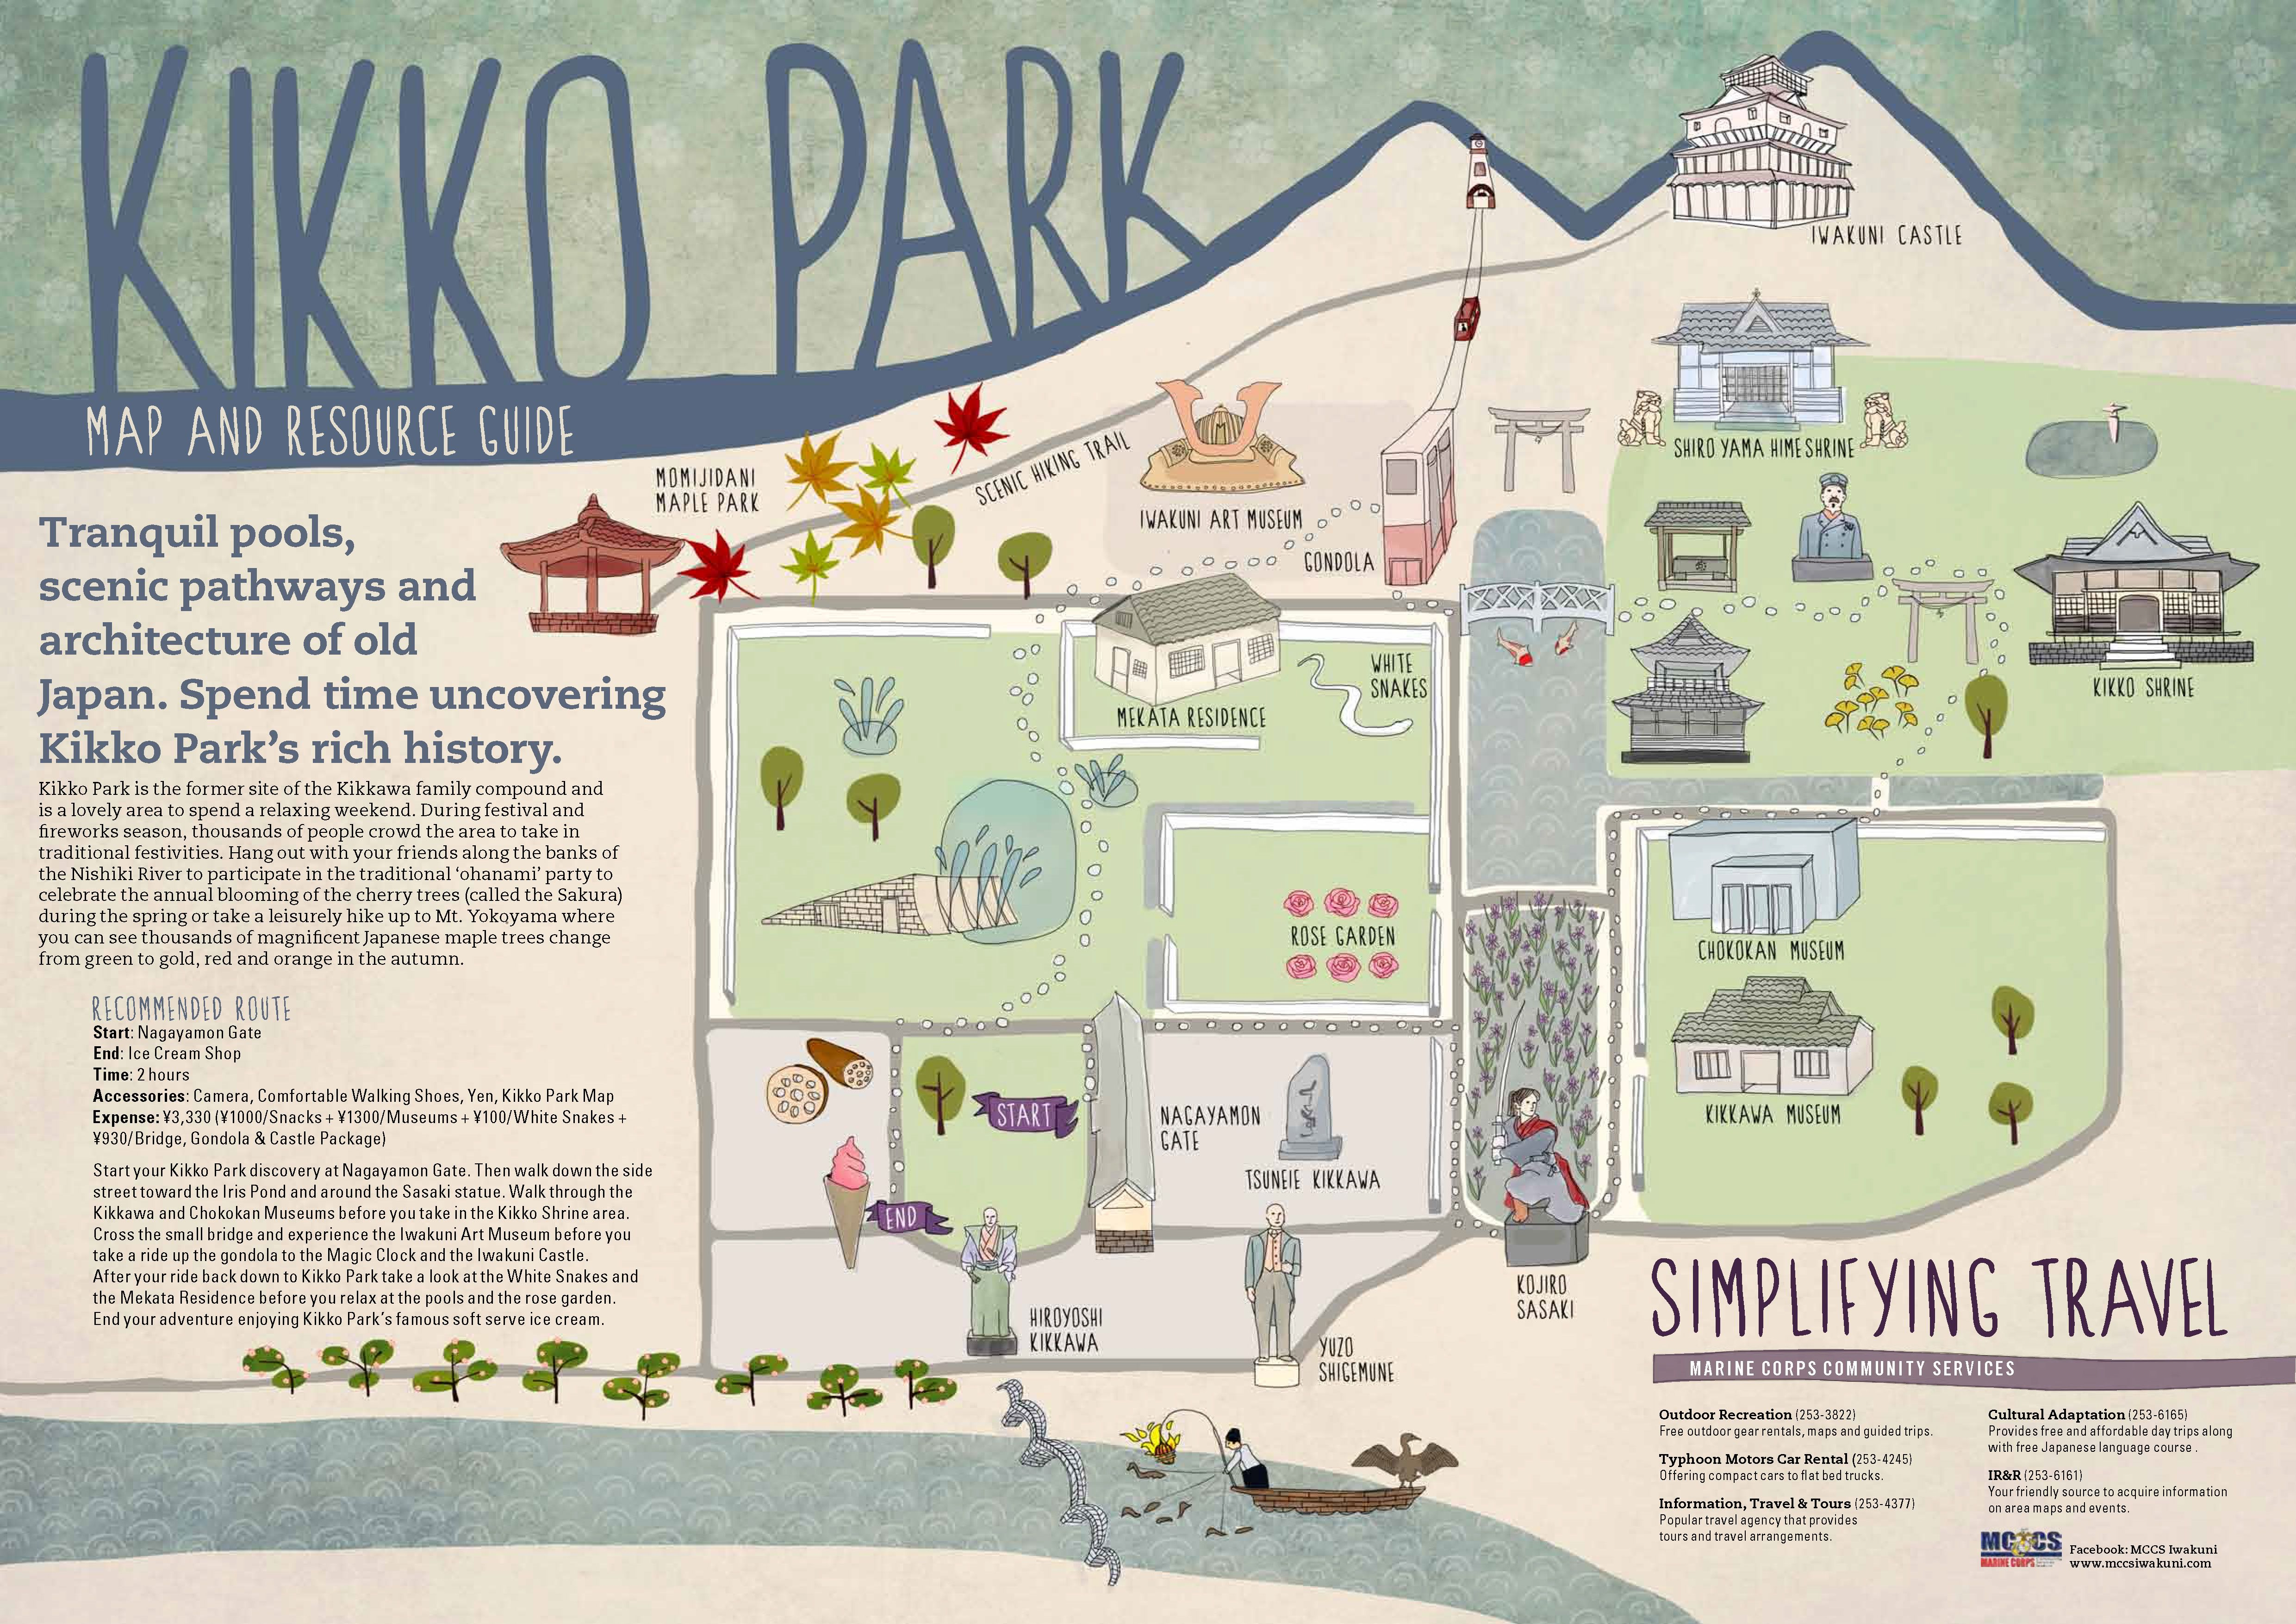 An easy to use map of Kikko Park in Iwakuni, Japan  includes